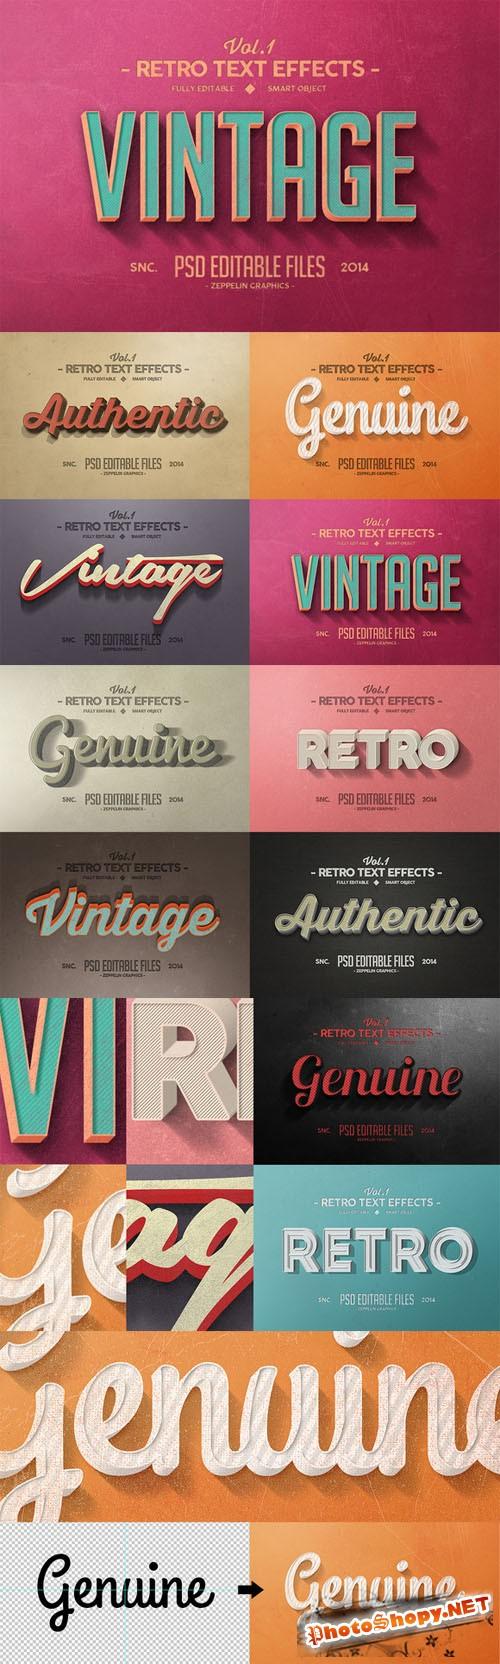 Vintage Text Effects Vol.1 - CM 57961